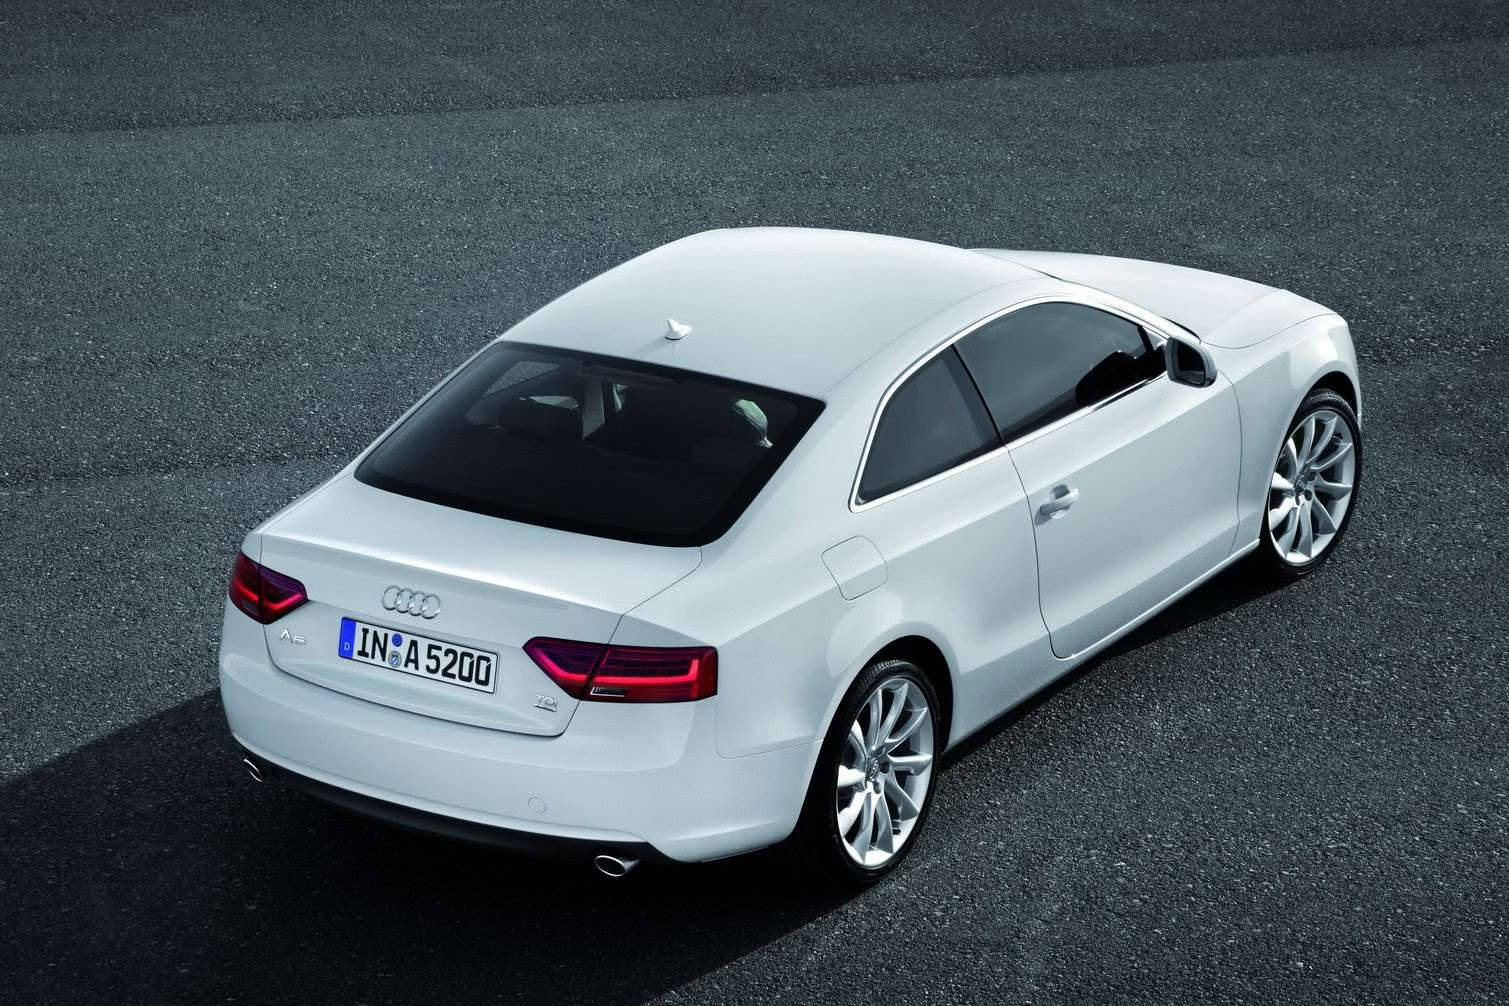 2012 Audi A5 fot all lifting lipiec 2011